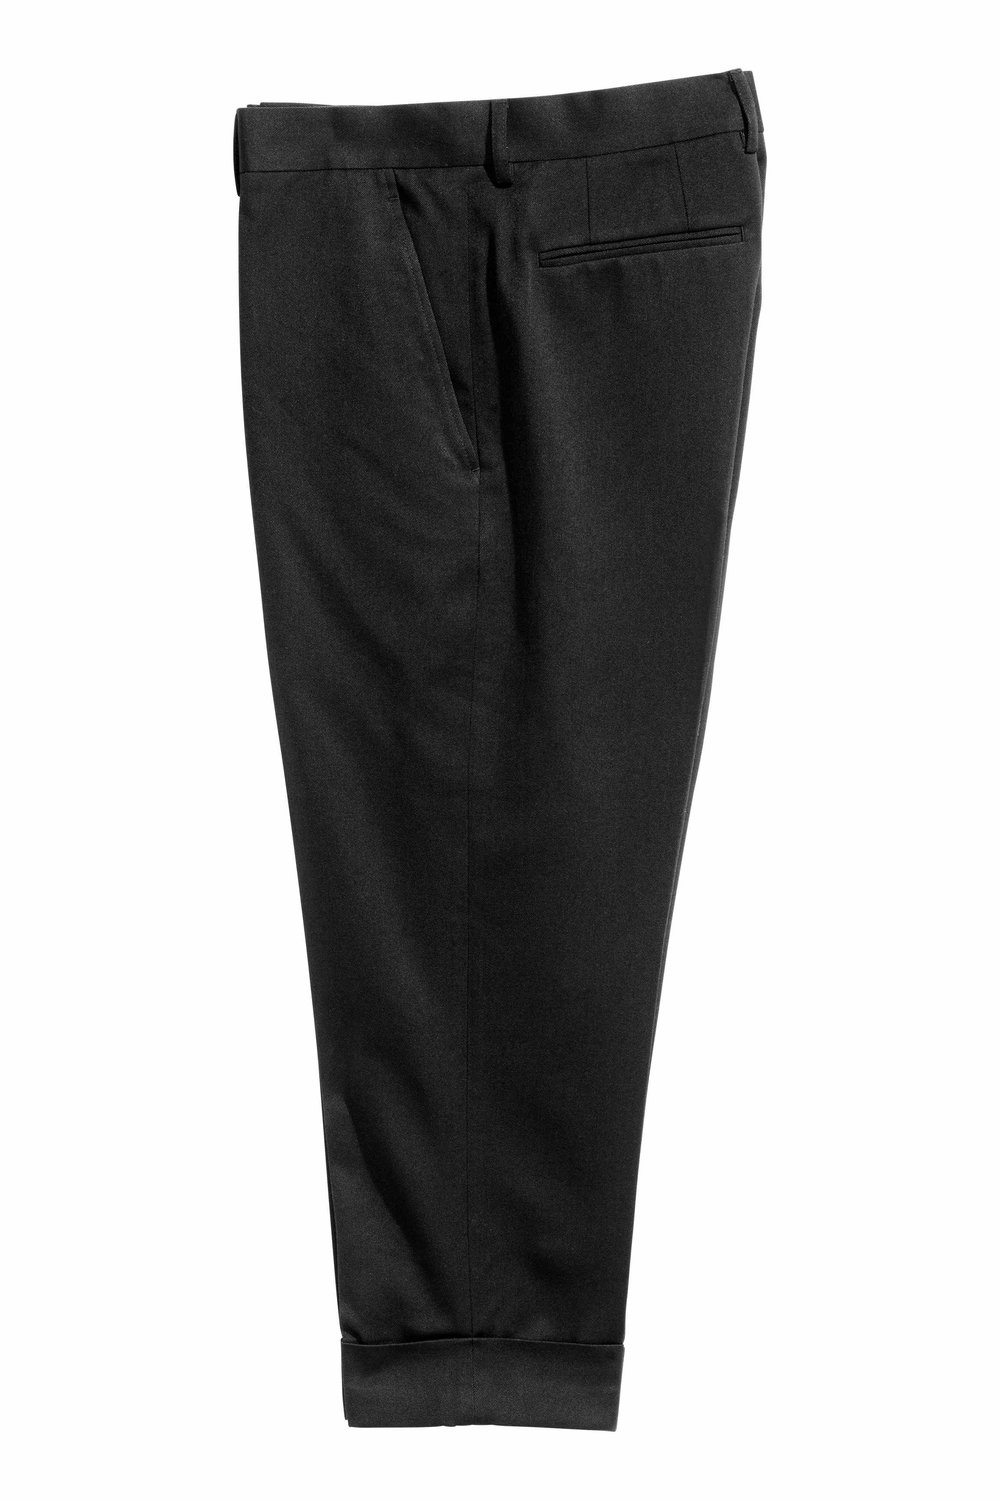 Suit twill trousers, £24.99 (hm.com)